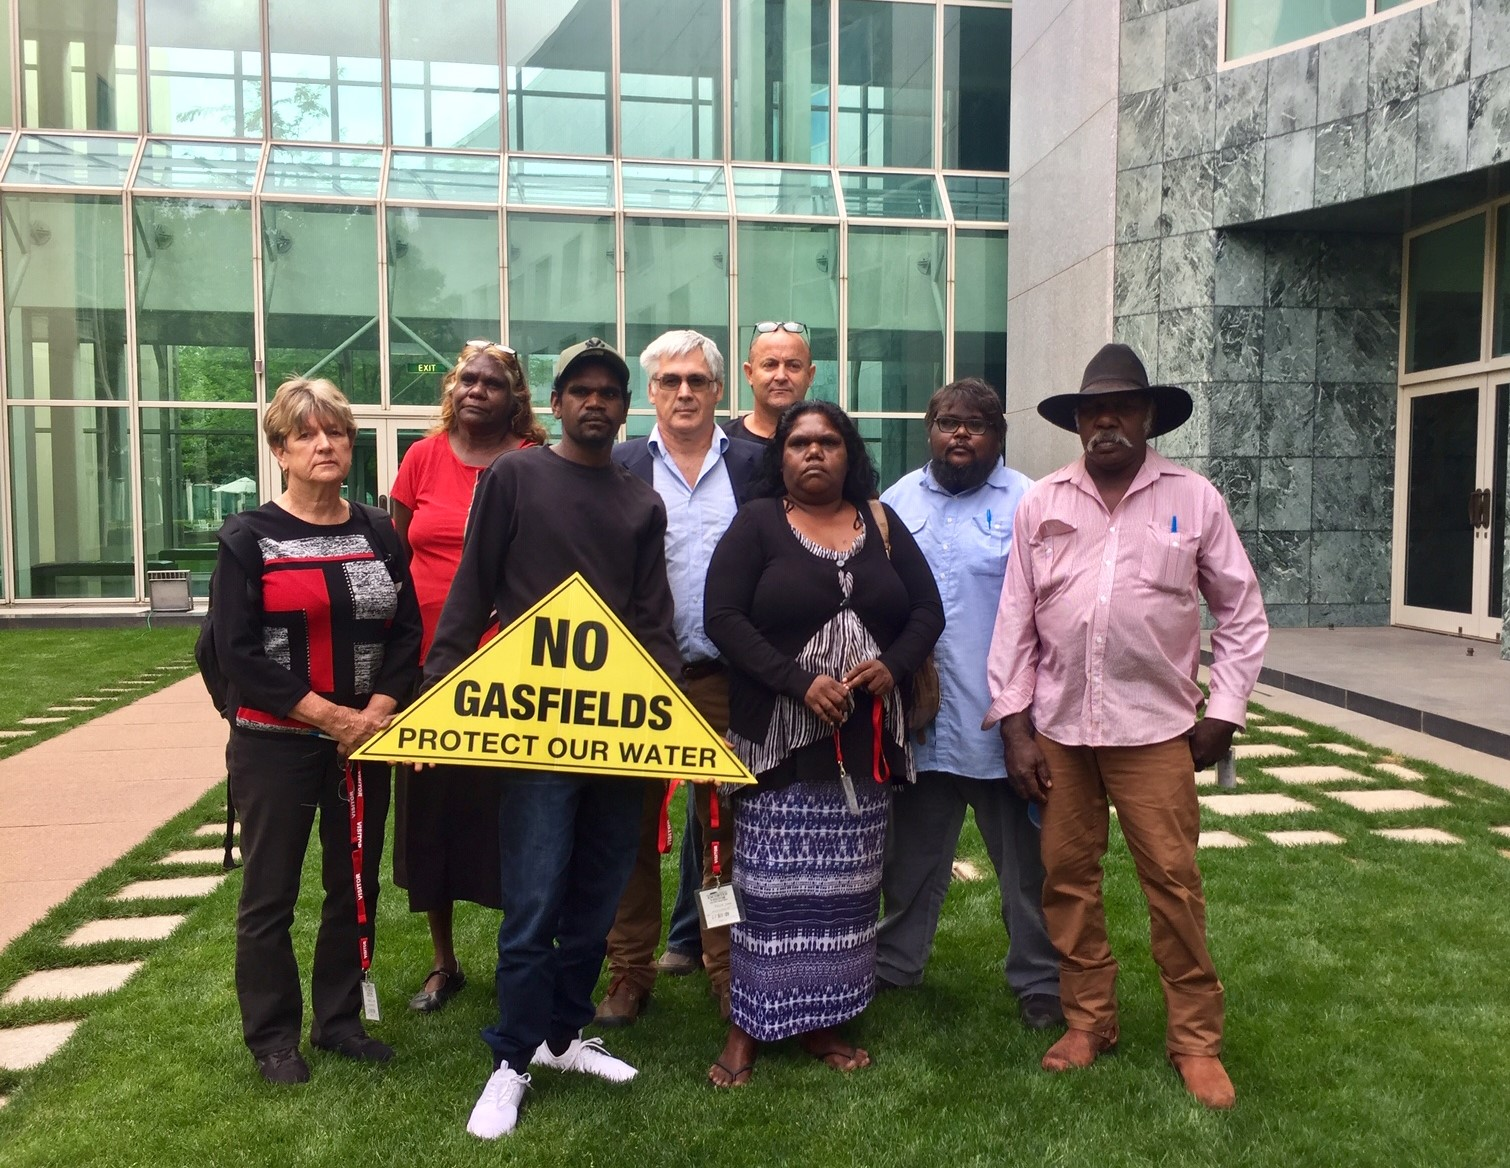 Frack-Finding tour concludes with Canberra call for national leadership to ban fracking